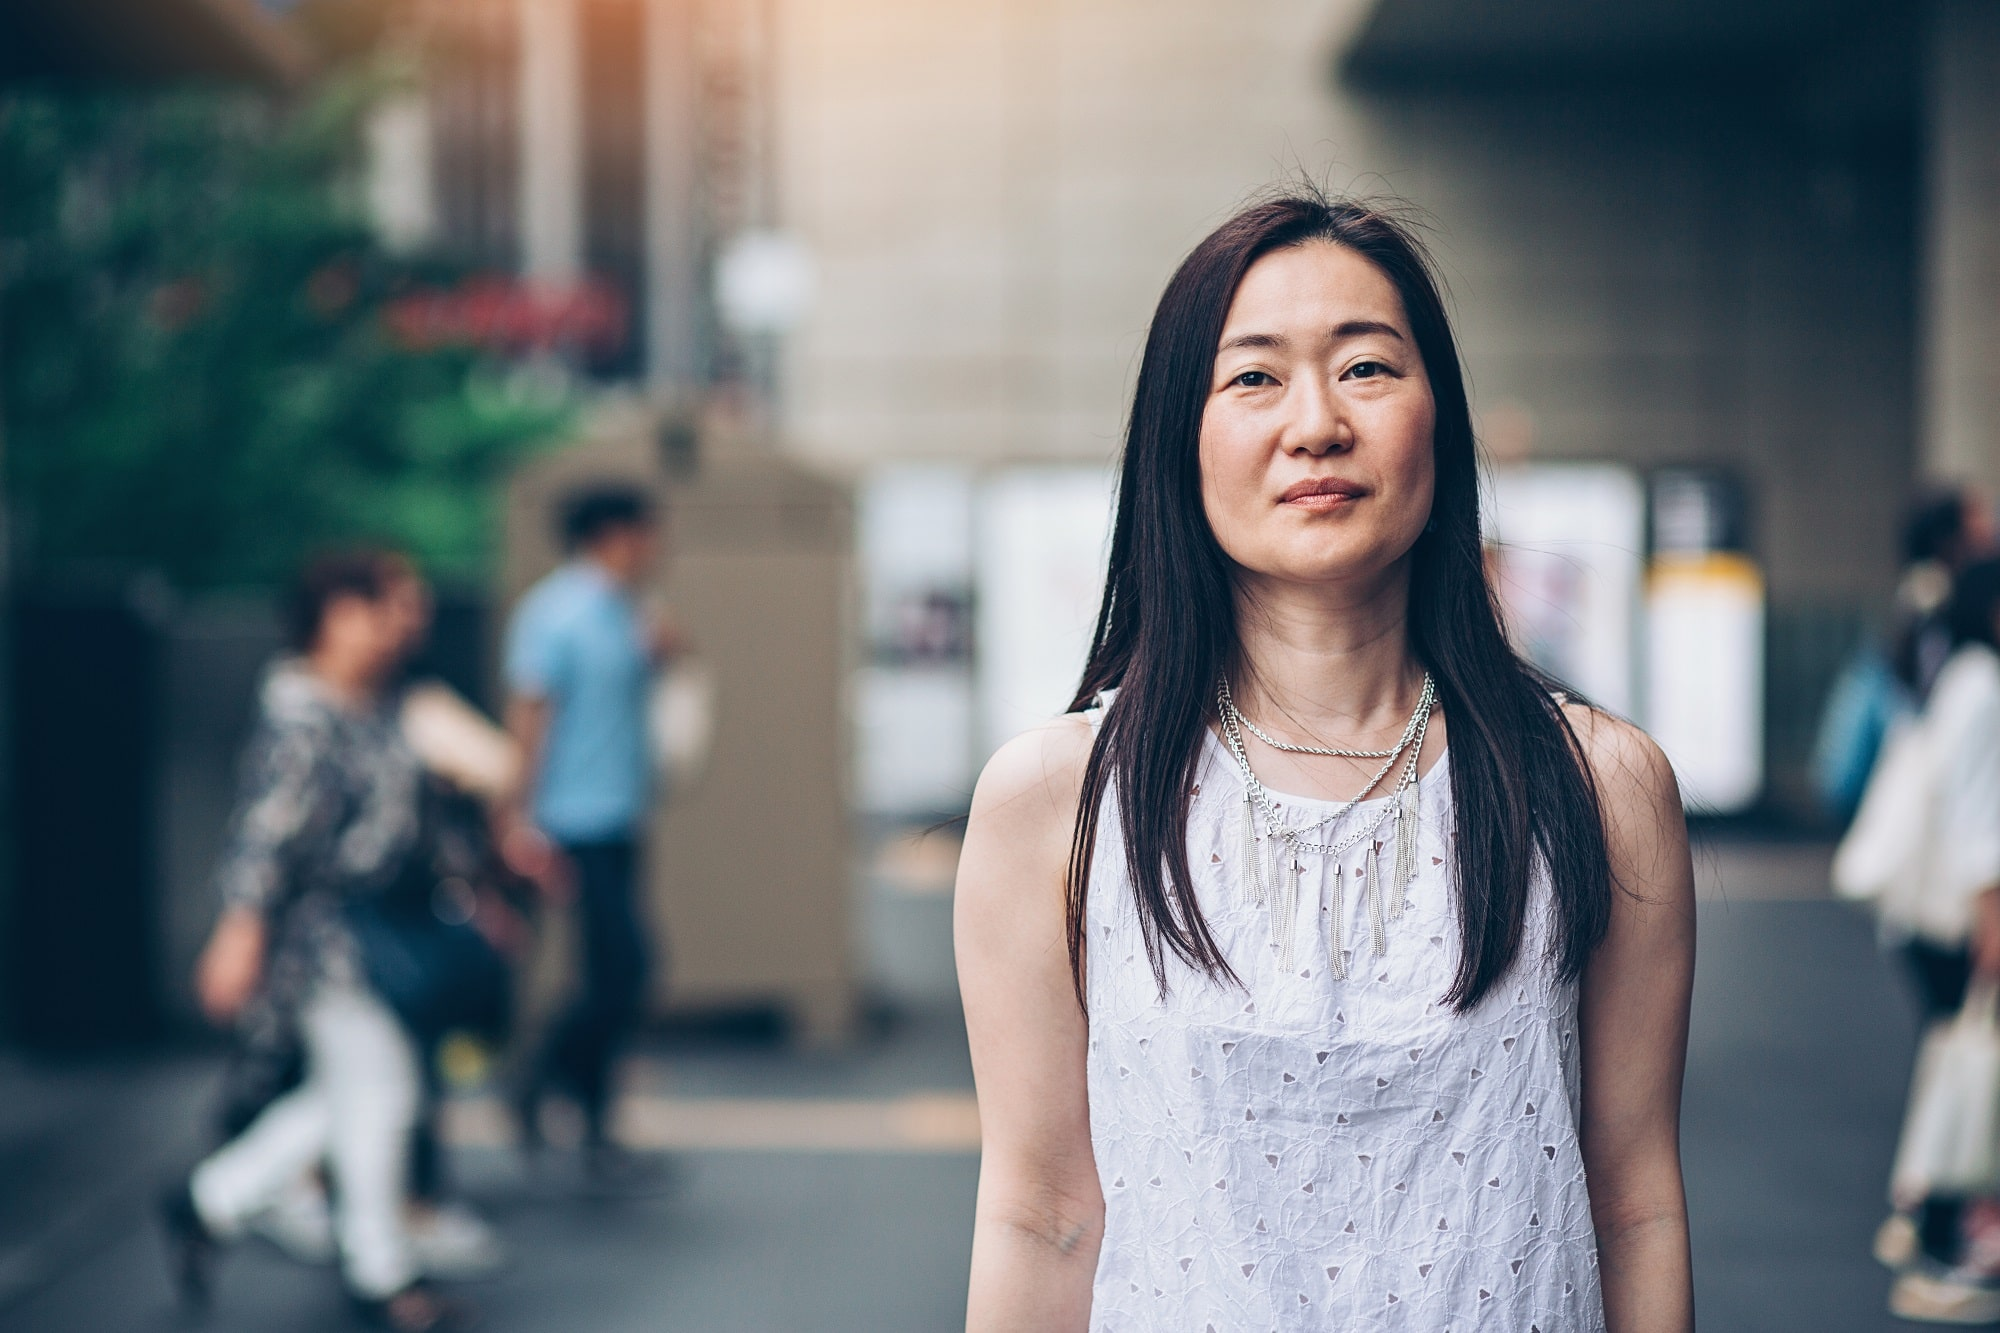 Portrait of a middle aged Japanese woman standing outdoors with arms crossed